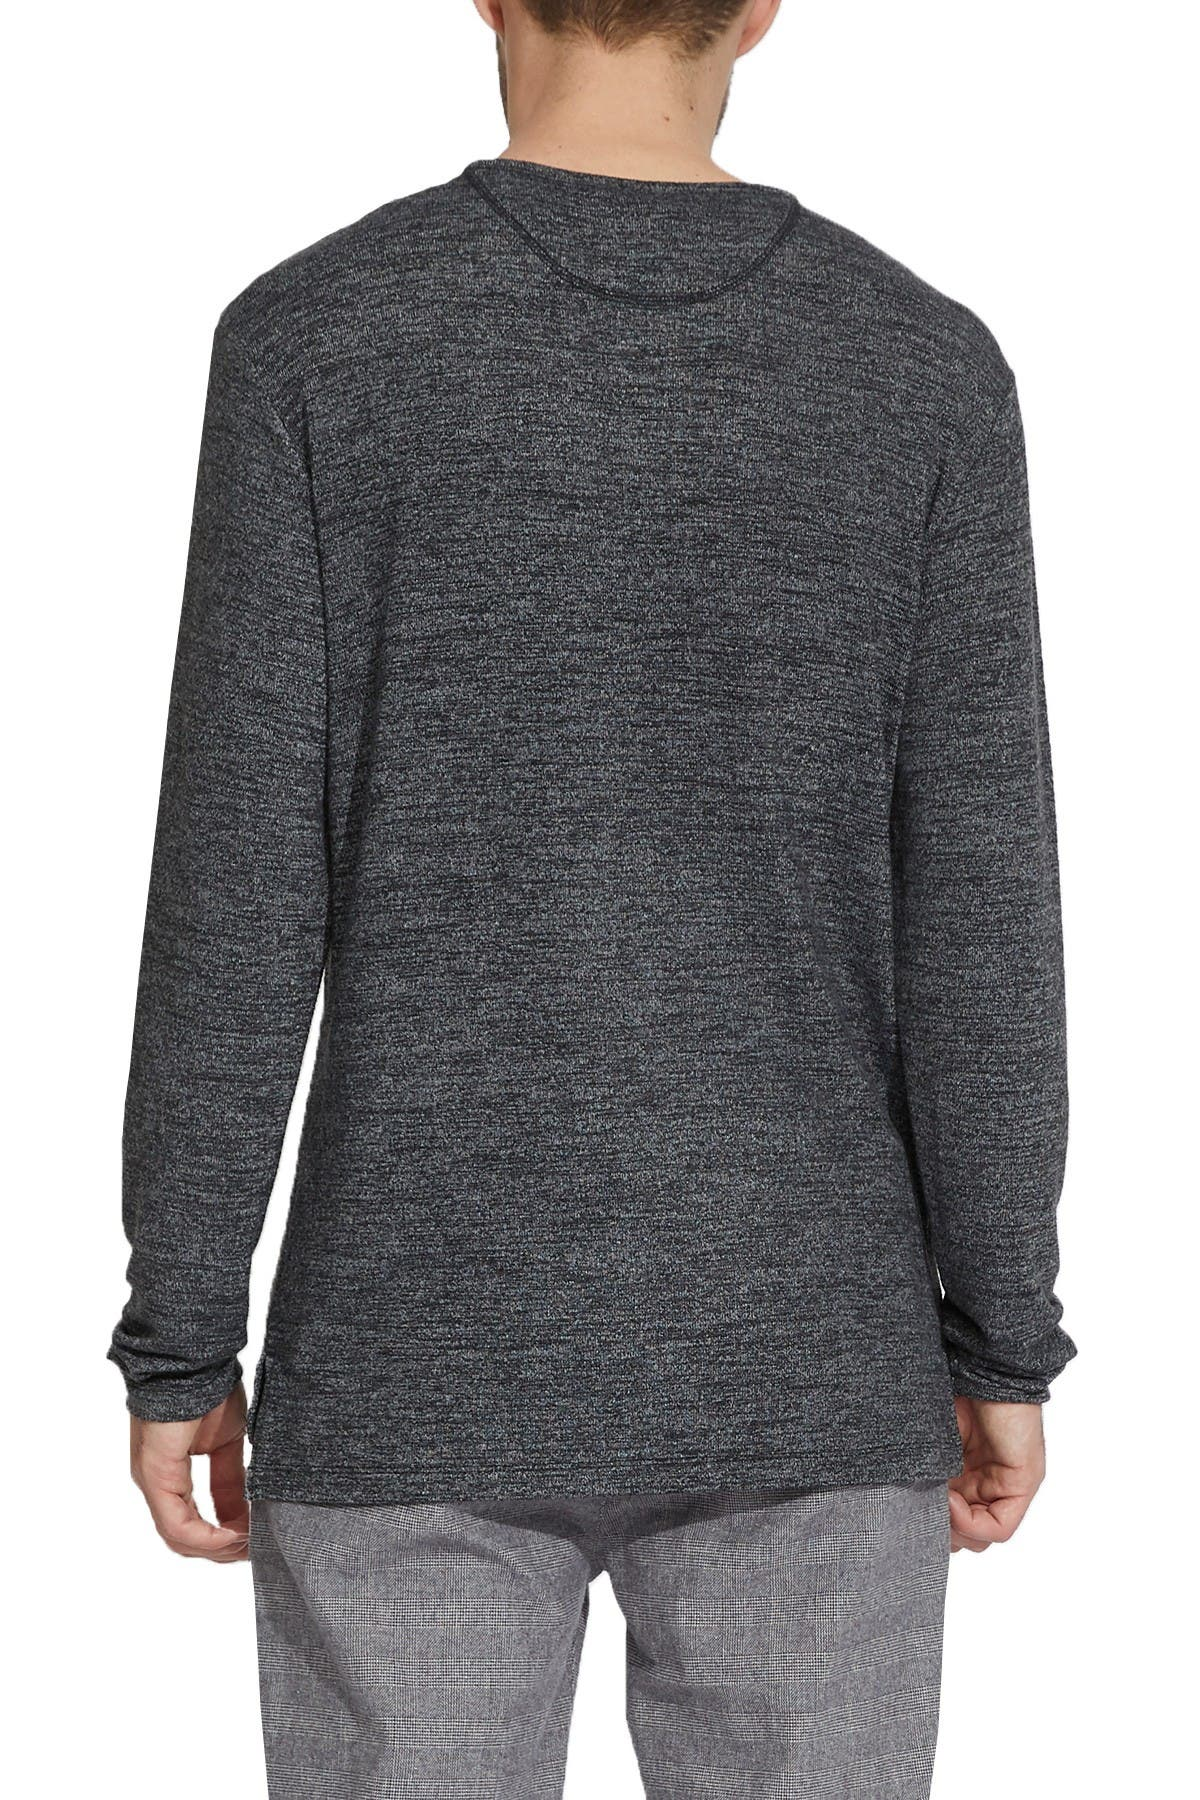 Image of Civil Society Hogan Hacchi Knit Henley